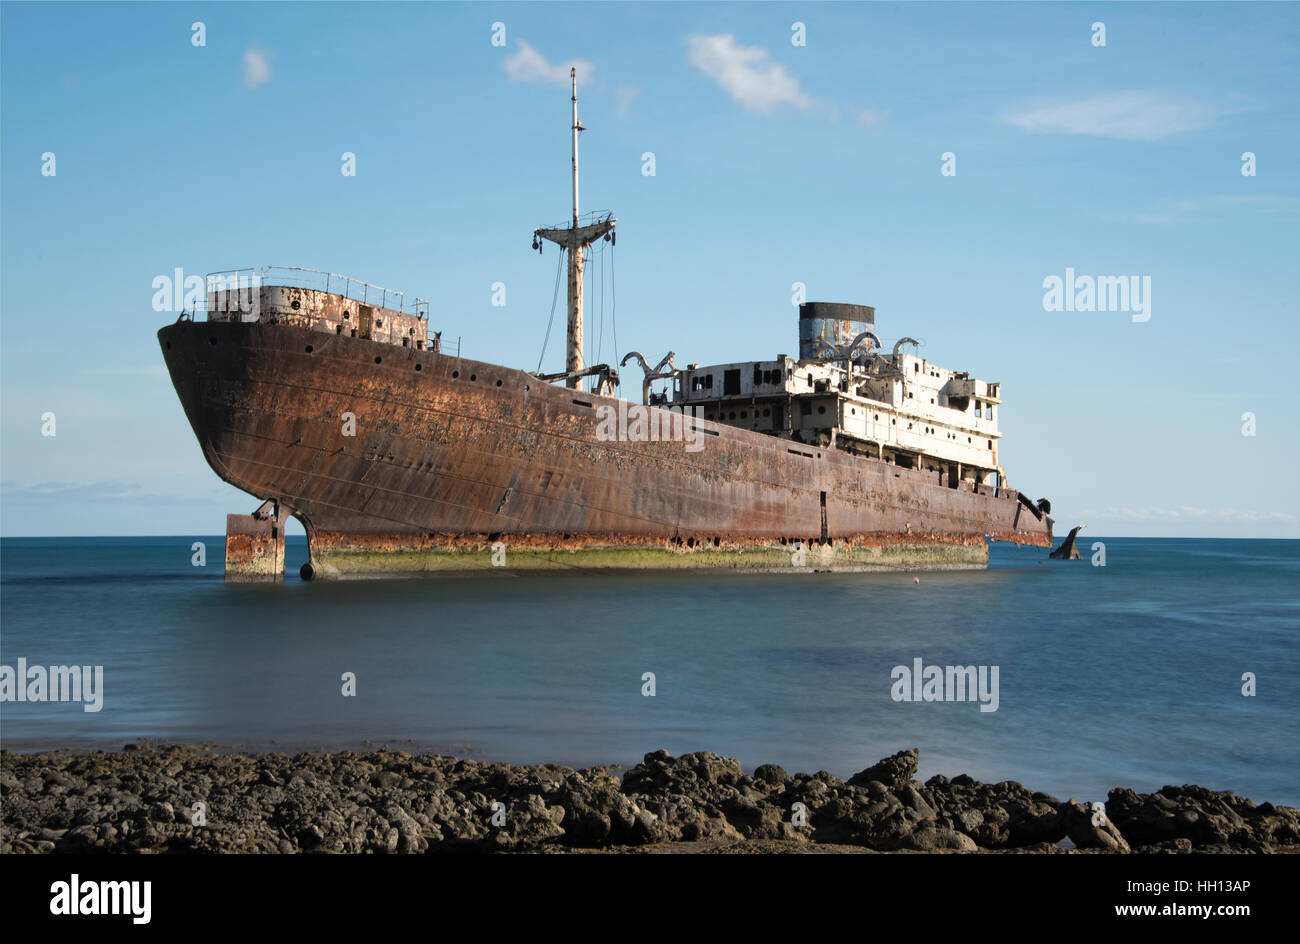 Shipwreck of the Temple Hall off the coast of Arrecife Lanzarote - Stock Image